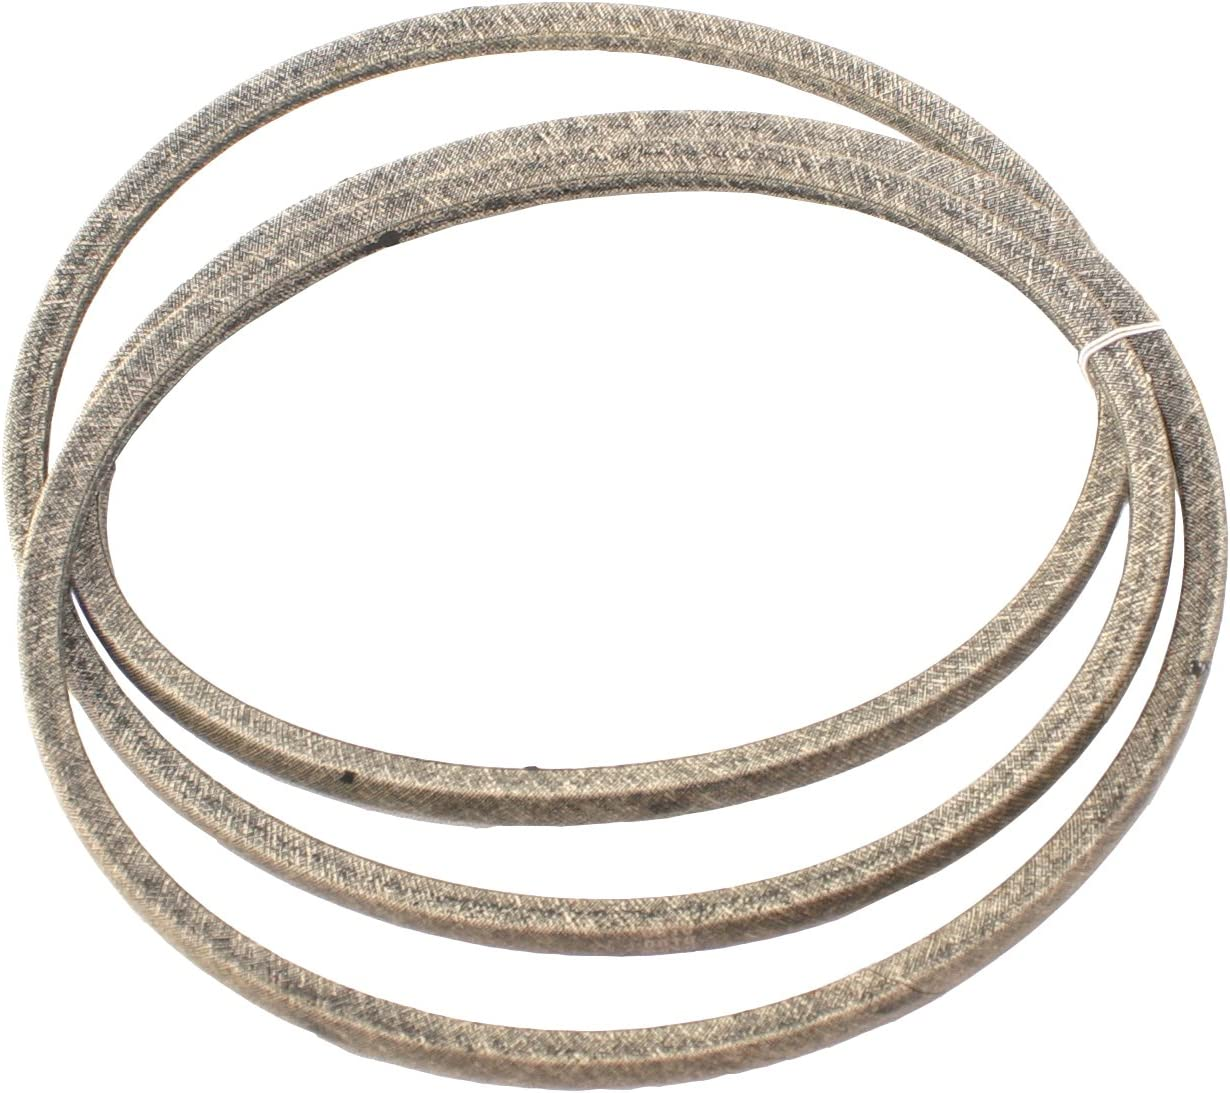 POULAN WEED EATER 532139573 Replacement V-Belt Made With Kevlar HUSQVARNA